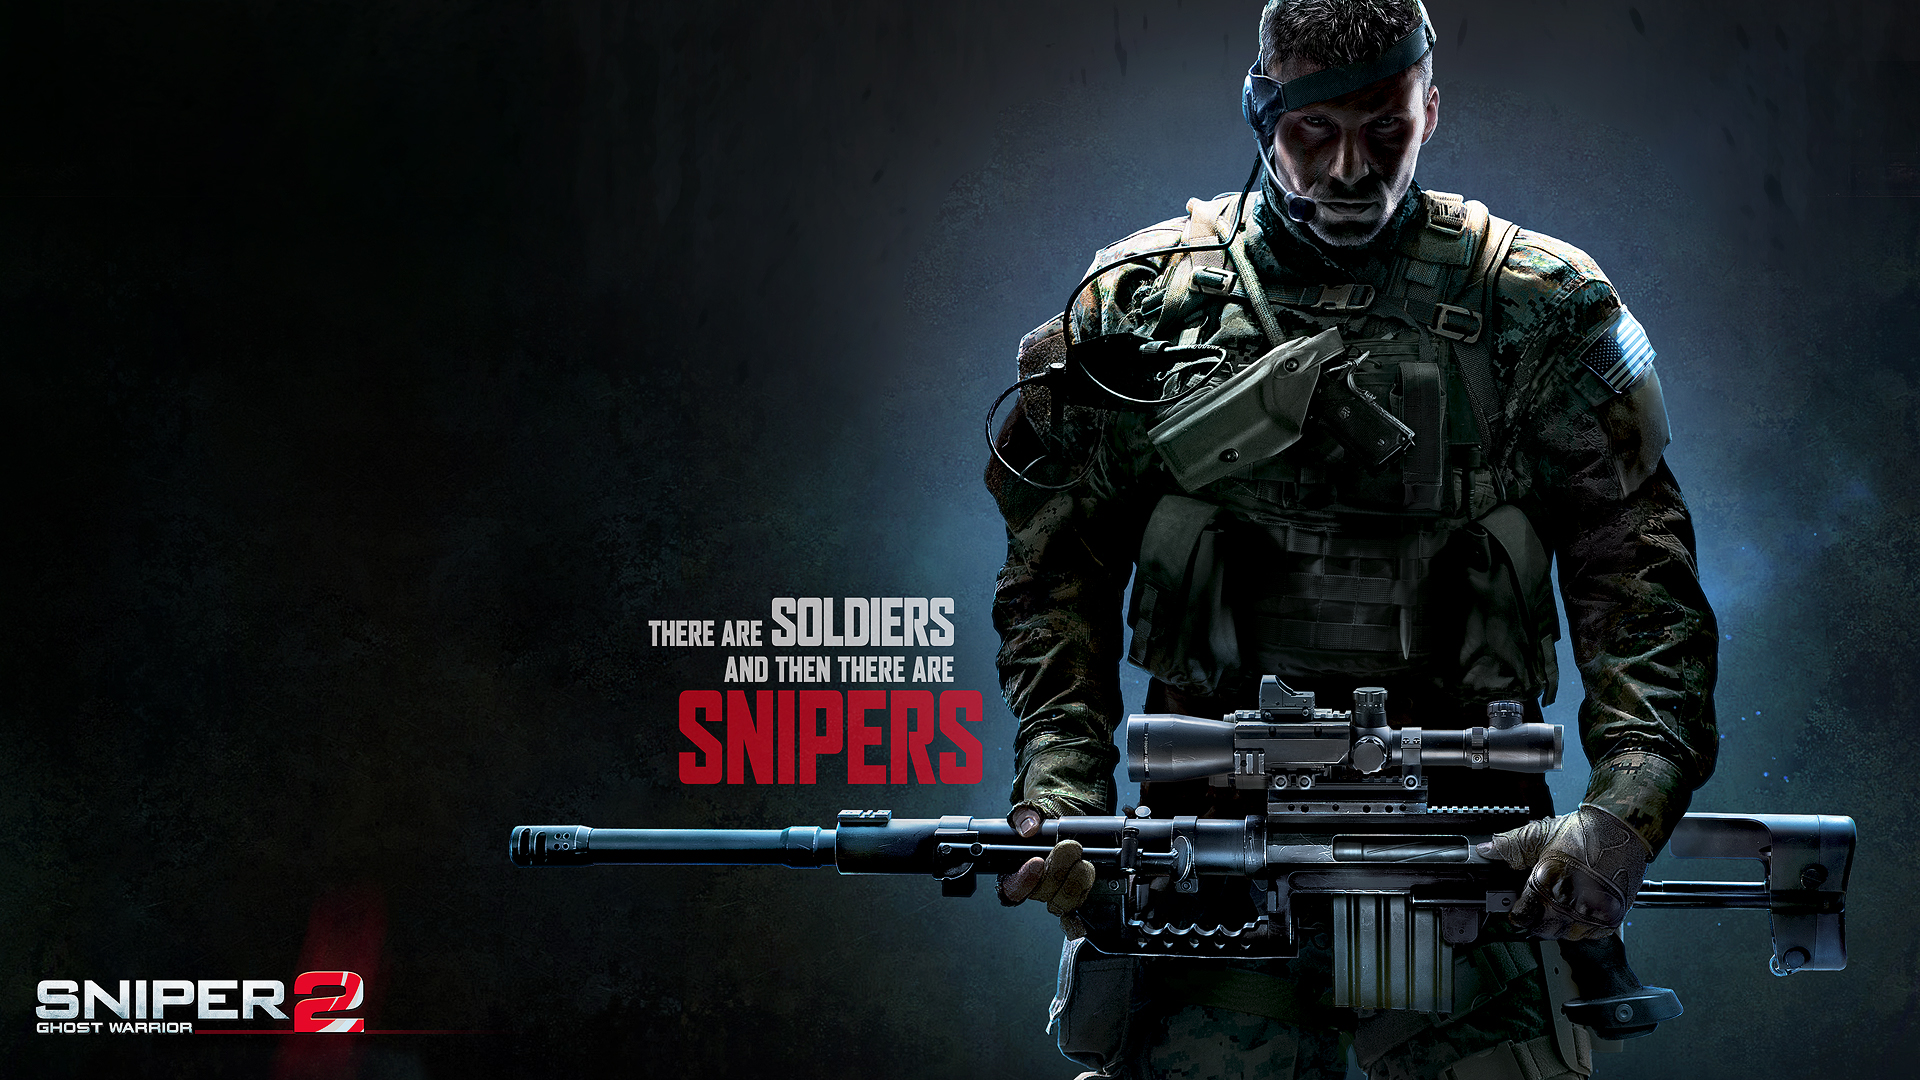 Ghost Warrior 2 You are downloading Sniper Ghost Warrior 2 wallpaper 1920x1080